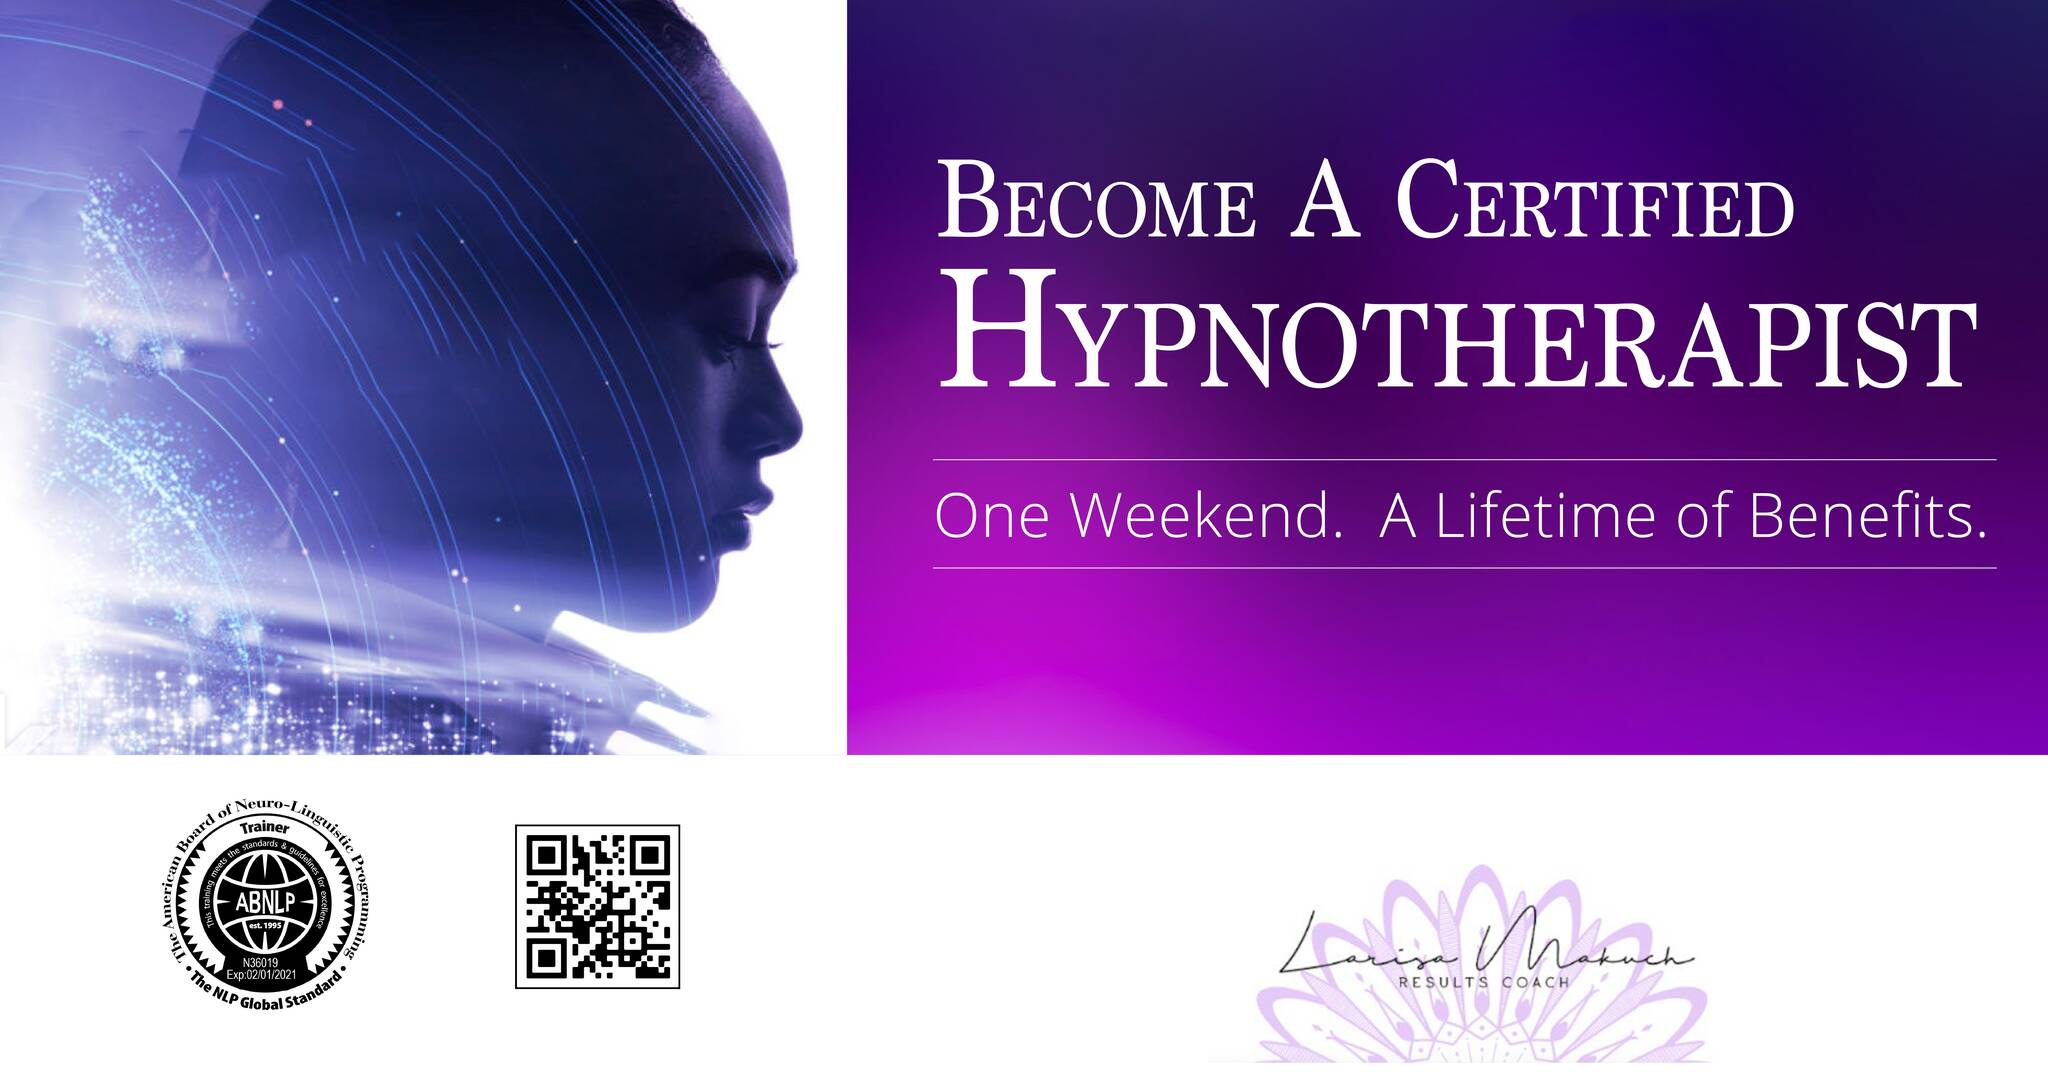 Become a Certified Hypnotherapist